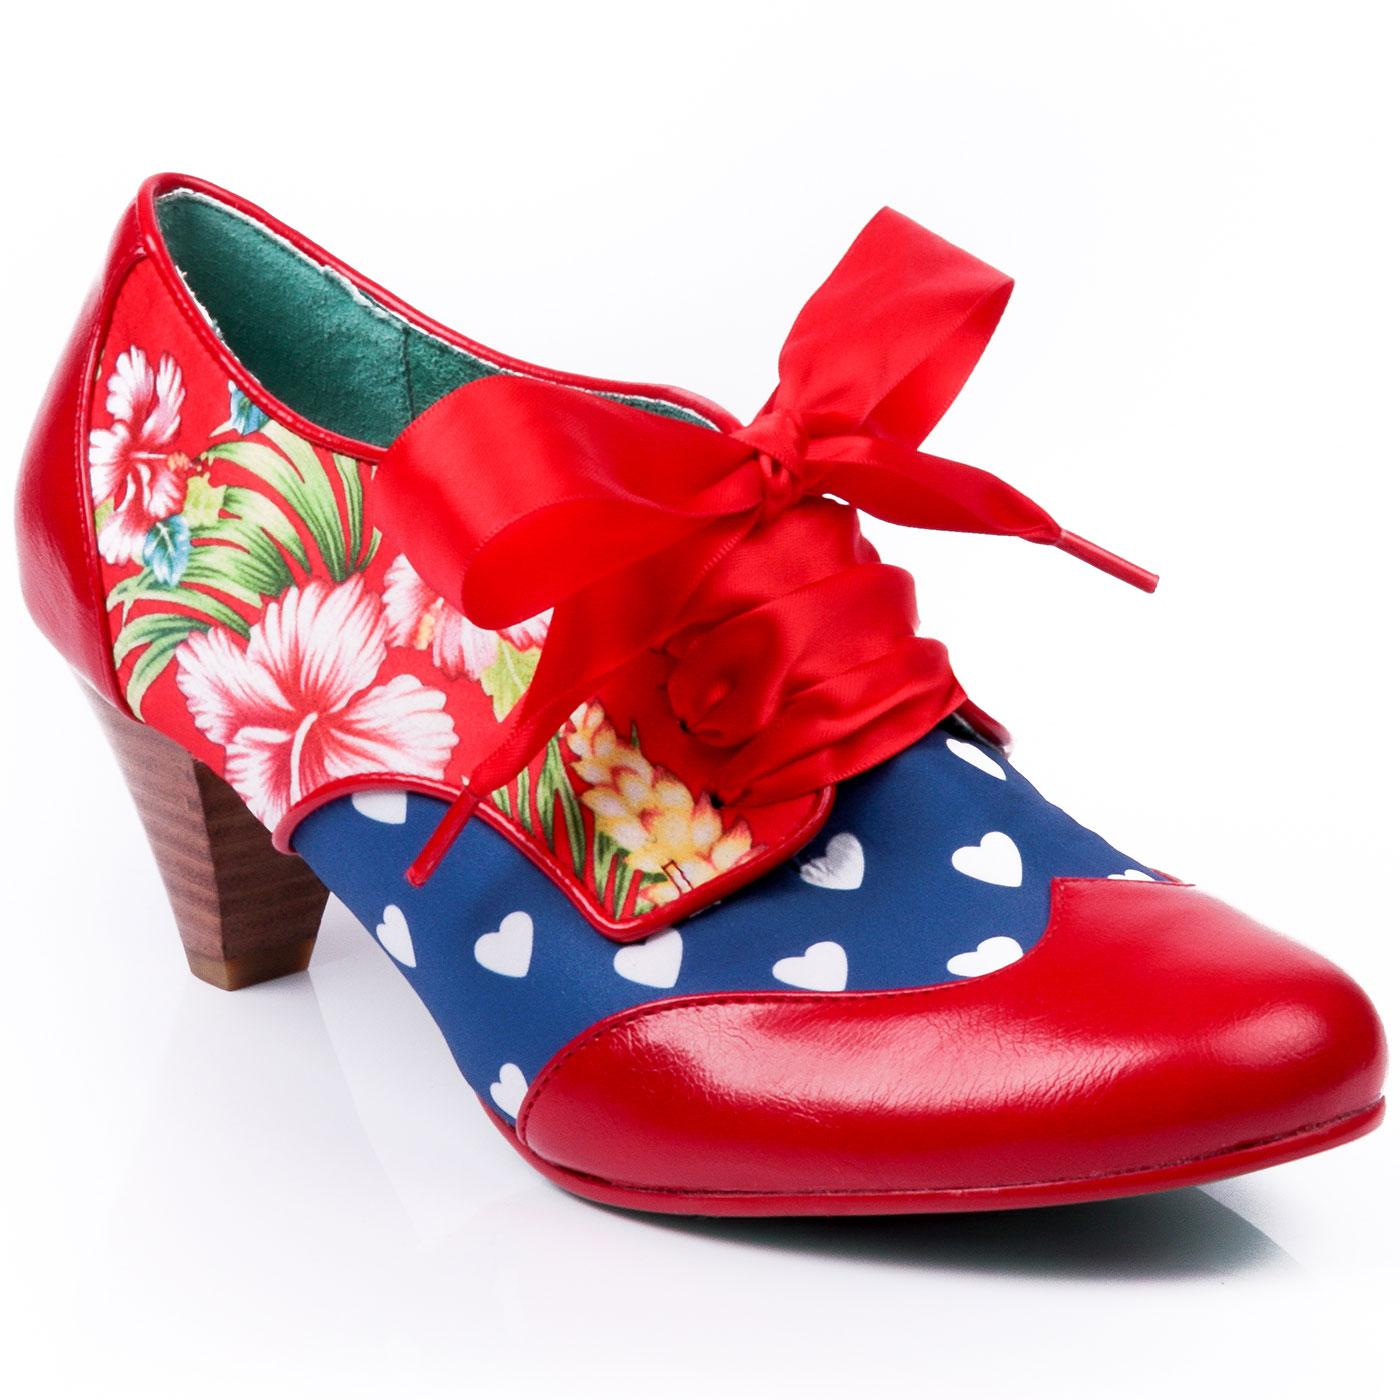 End Of Story POETIC LICENCE Vintage Floral Shoes R